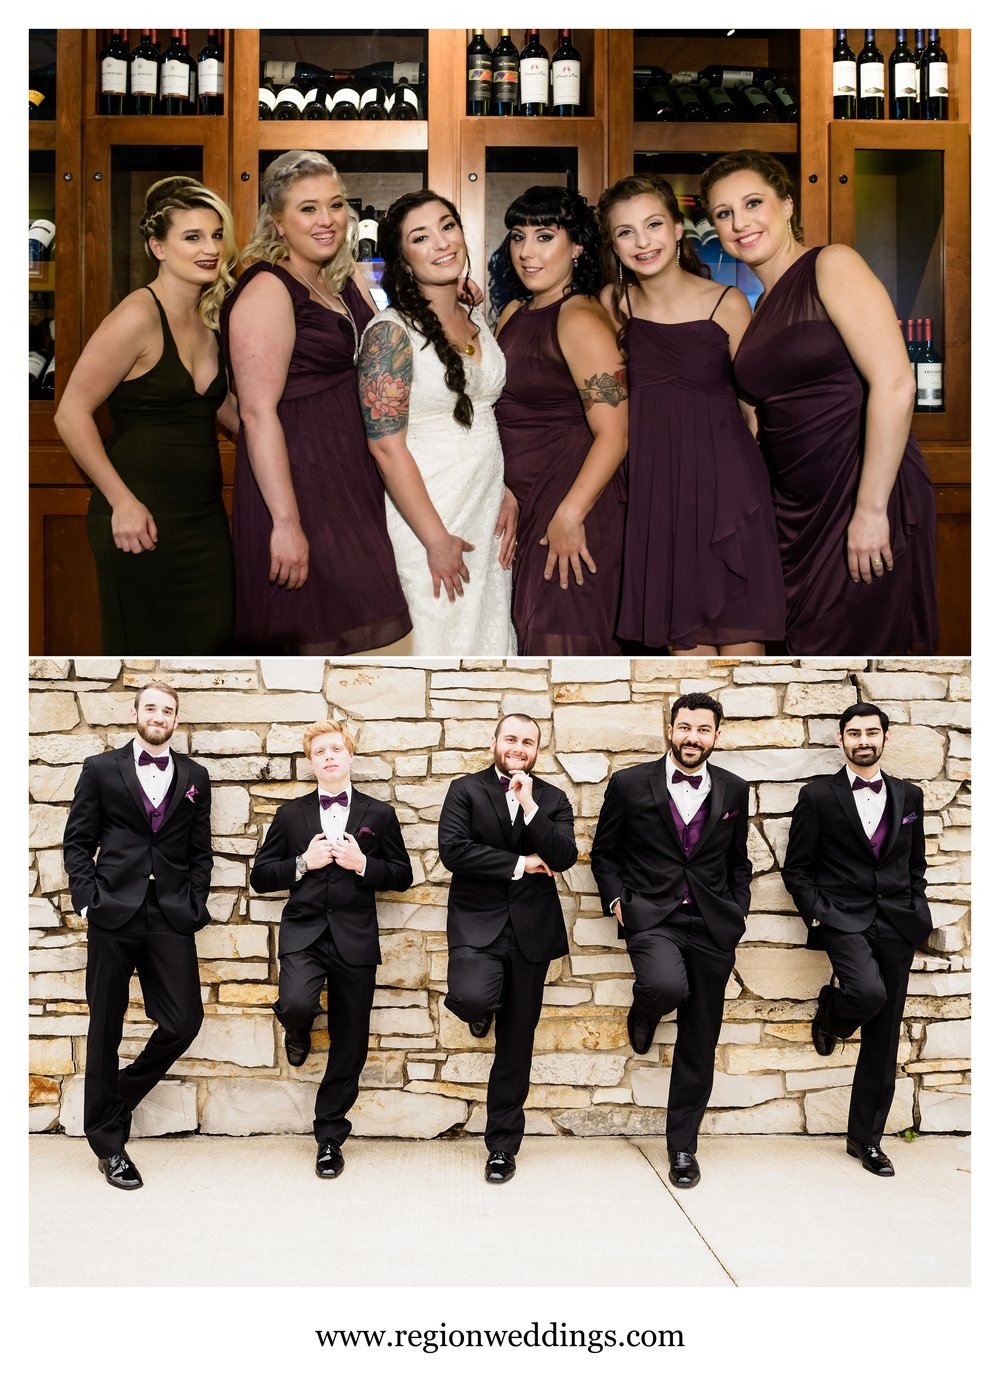 Bridesmaids and groomsmen on wedding day.